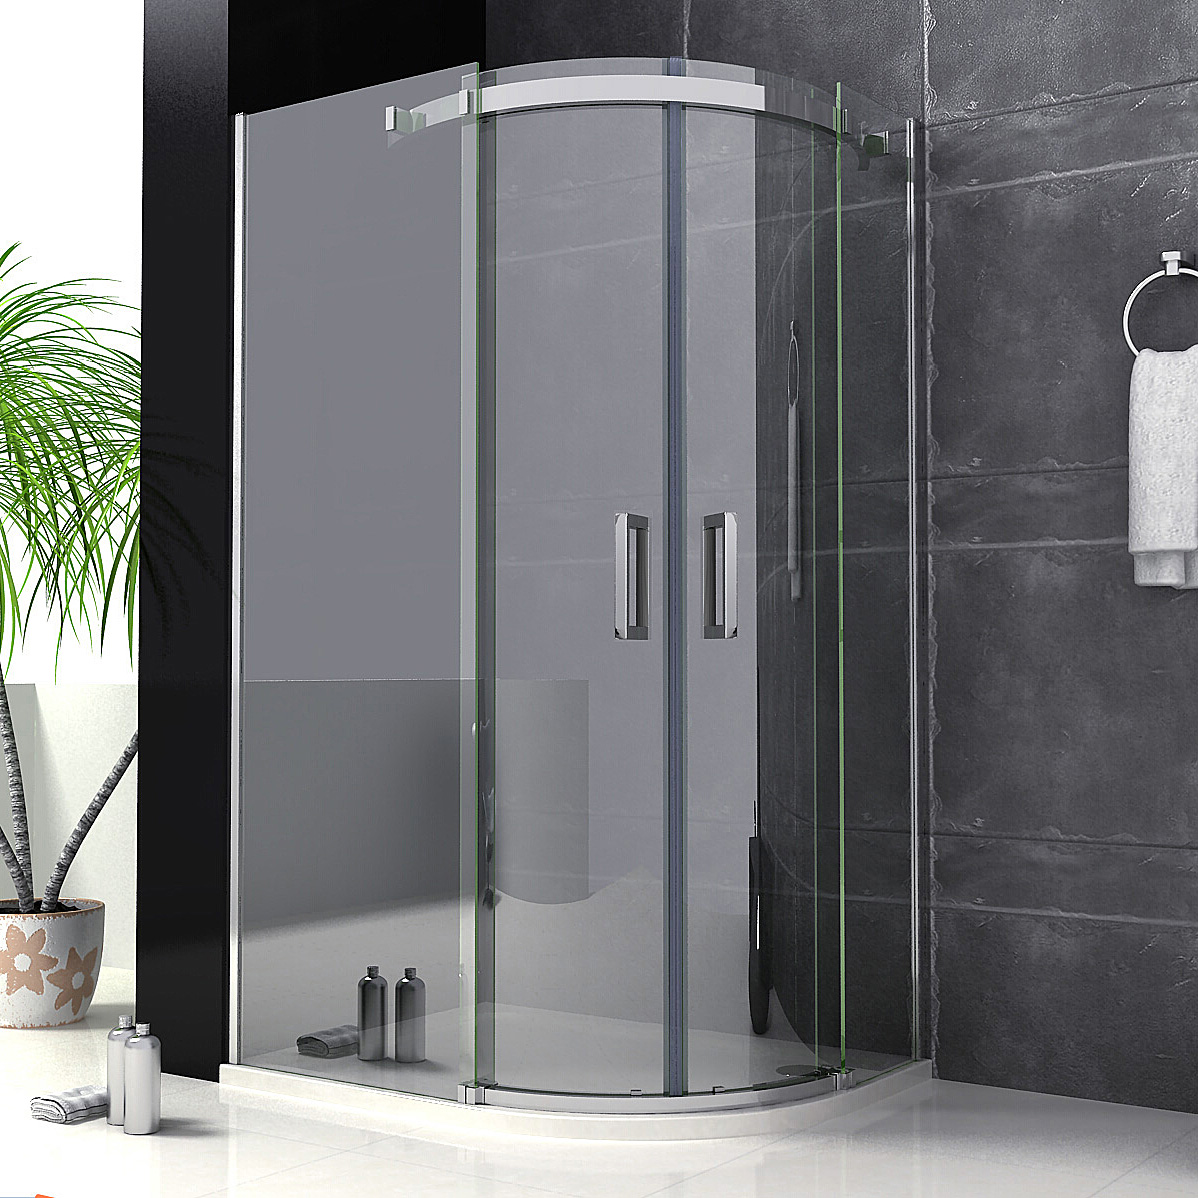 1200x900mm Luxury Walk In Quadrant Shower Enclosure Sliding Glass Door Cubicl